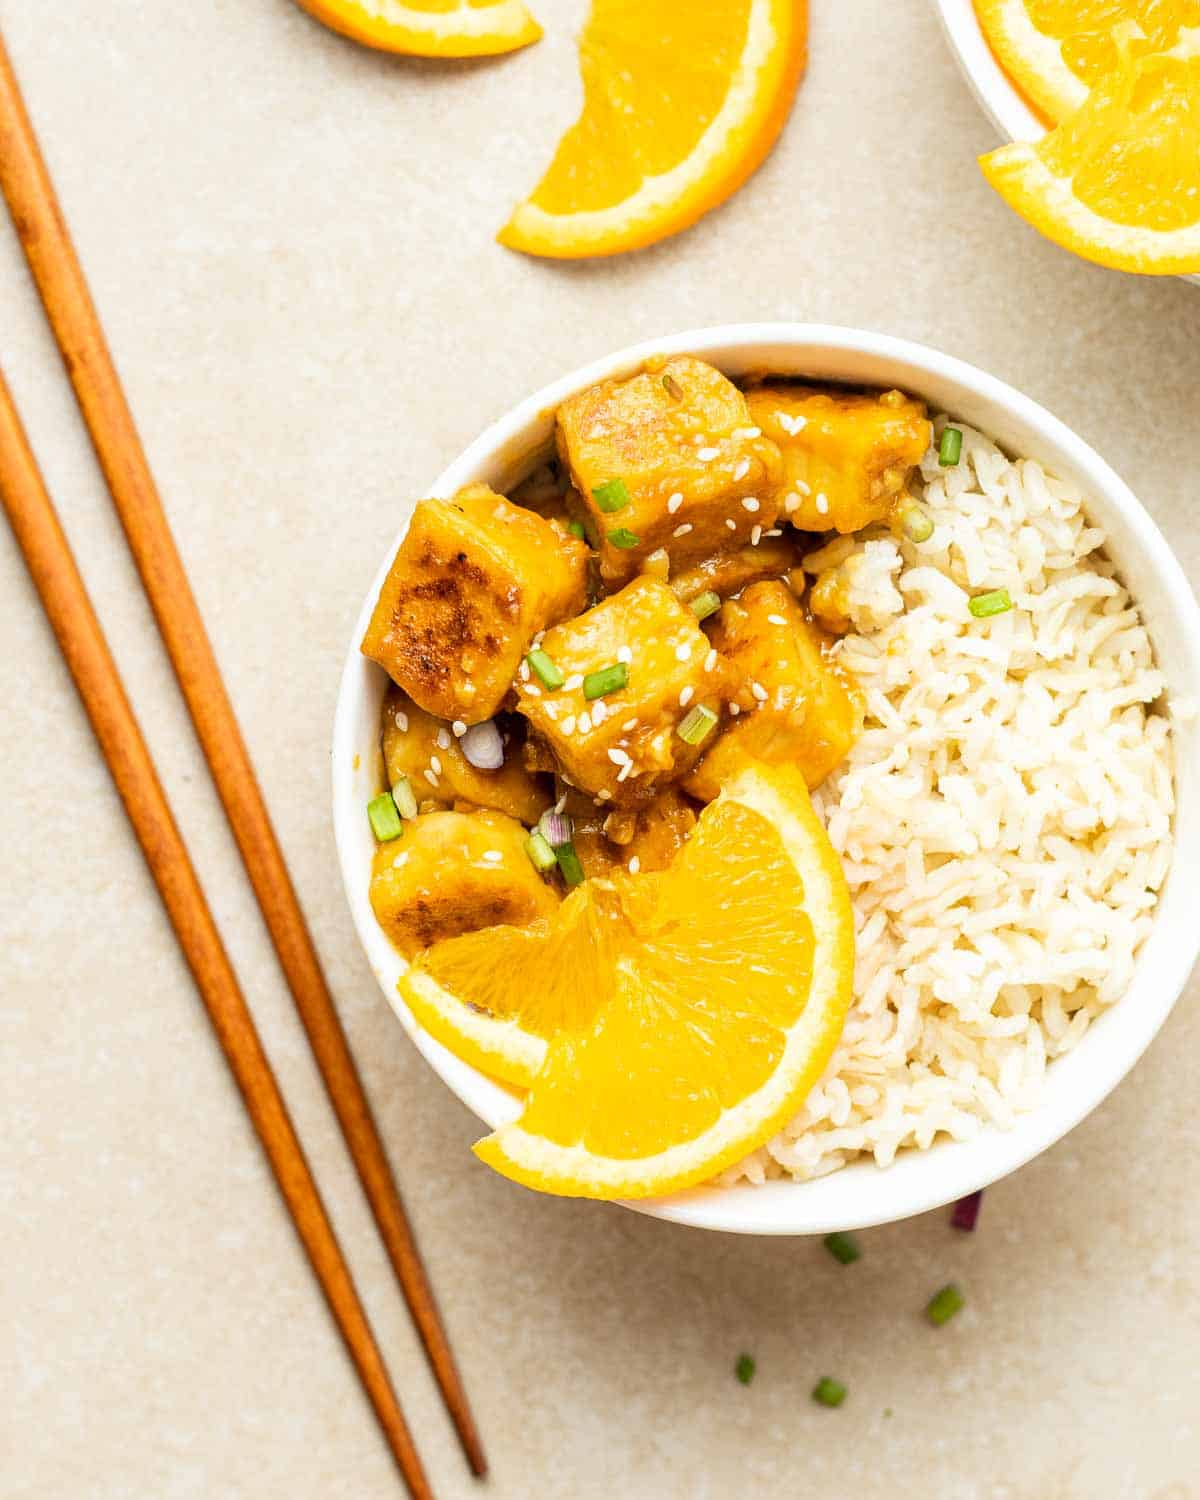 Orange tofu served on a bed of rice topped with scallions and orange slices with chopsticks beside it.